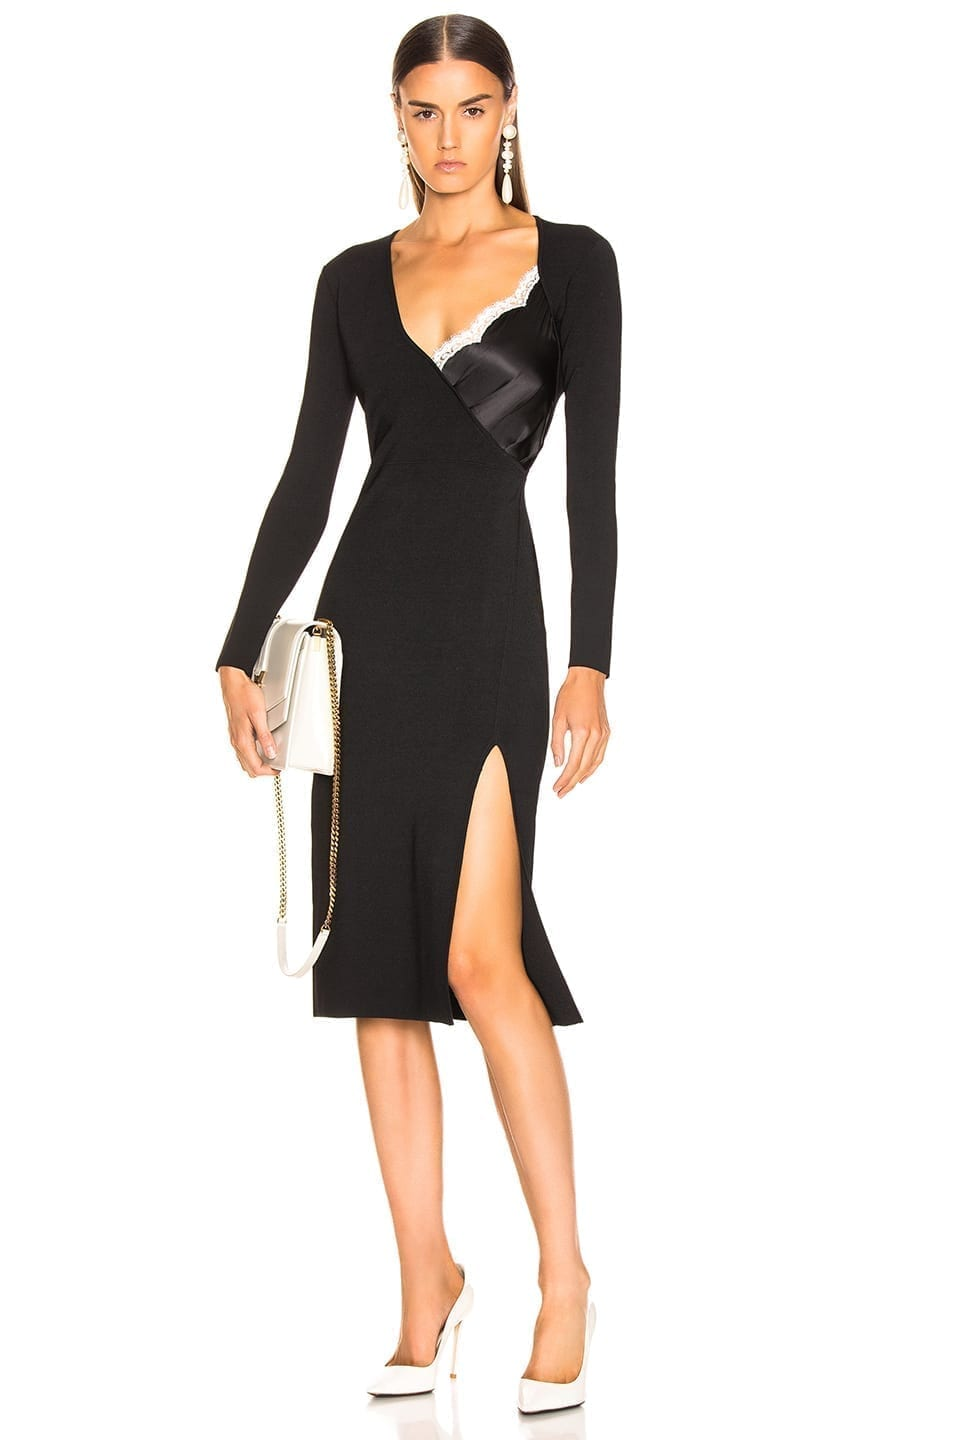 ALTUZARRA Gianni Black Dress